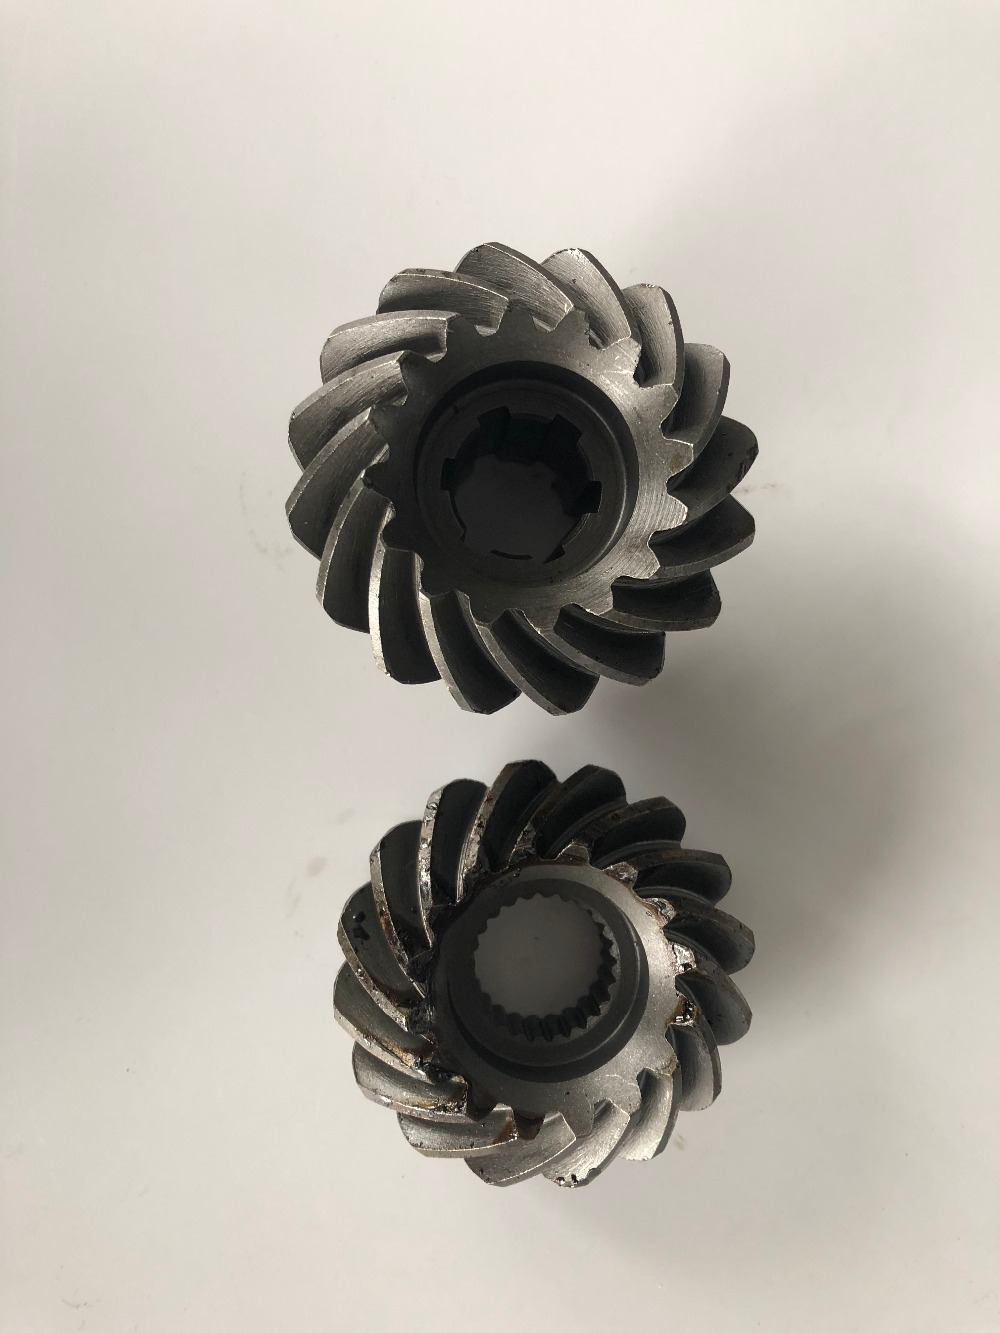 Drive bevel gear master and slave gear For Kazuma Xinyang 500 500CC Jaguar atv utv engine parts все цены